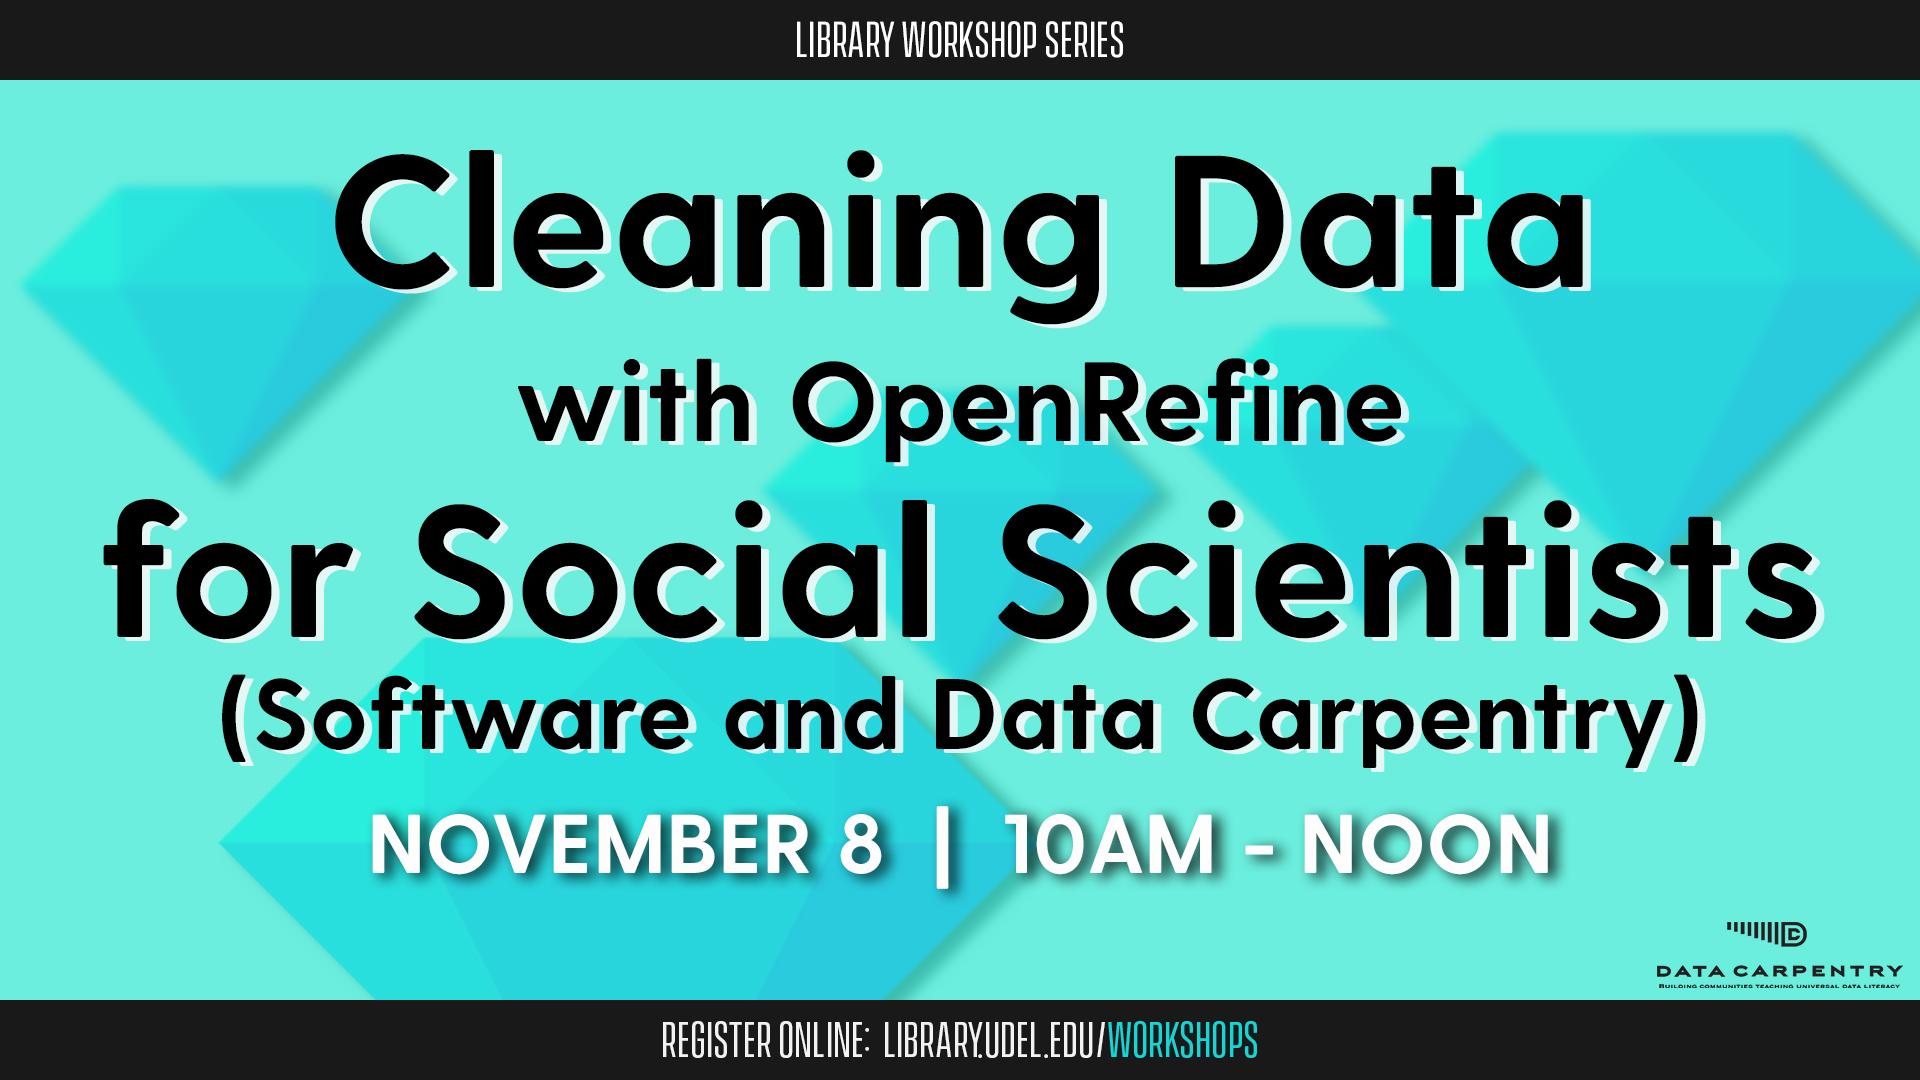 Cleaning Data with OpenRefine for Social Scientists (Software and Data Carpentry)